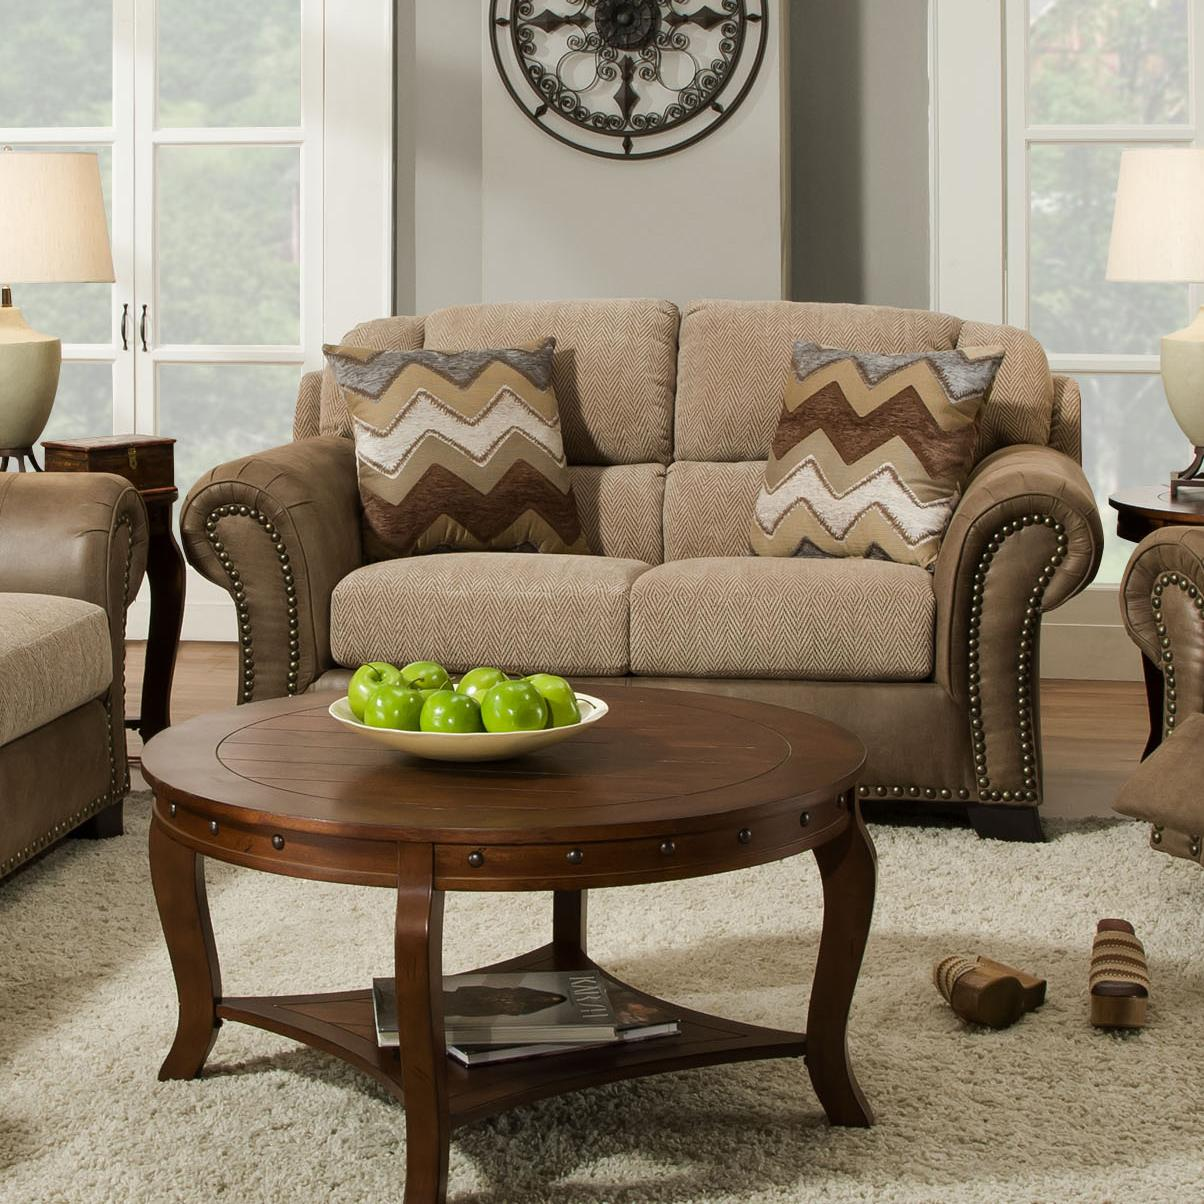 27A0 Loveseat by Corinthian at Story & Lee Furniture